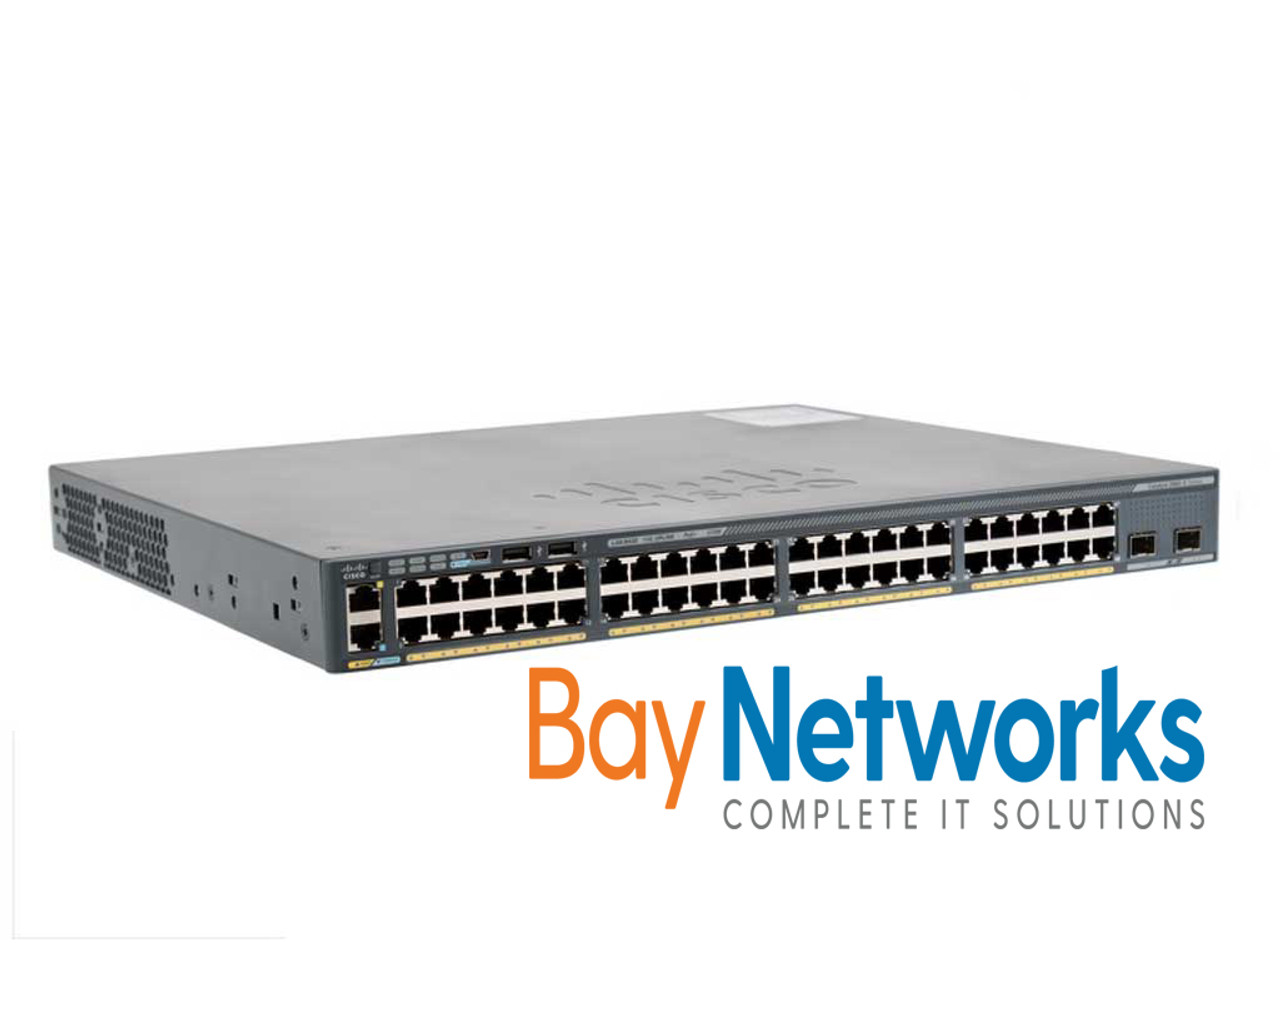 Cisco WS-C2960X-48FPD-L Catalyst 2960-X Series Switch